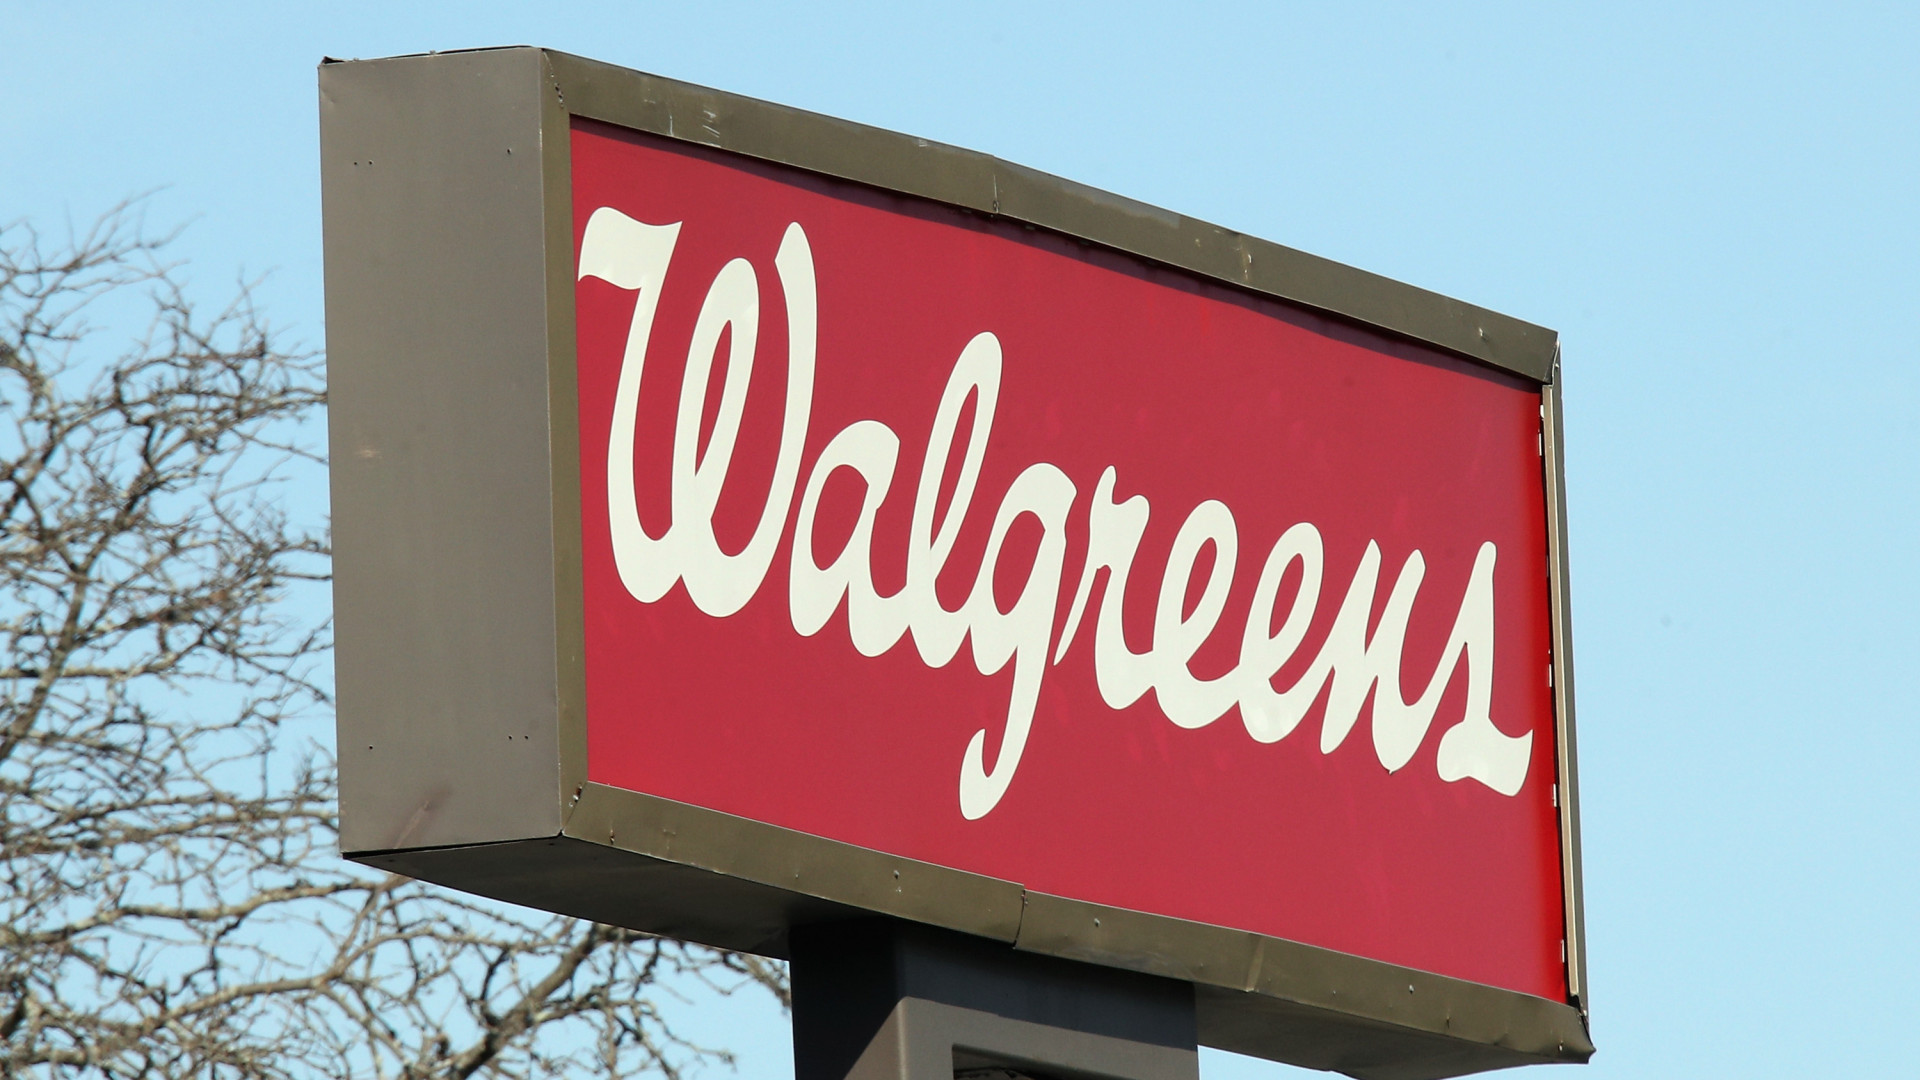 A Walgreens sign is seen on March 18, 2020, in Hicksville, New York. (Credit: Bruce Bennett / Getty Images)